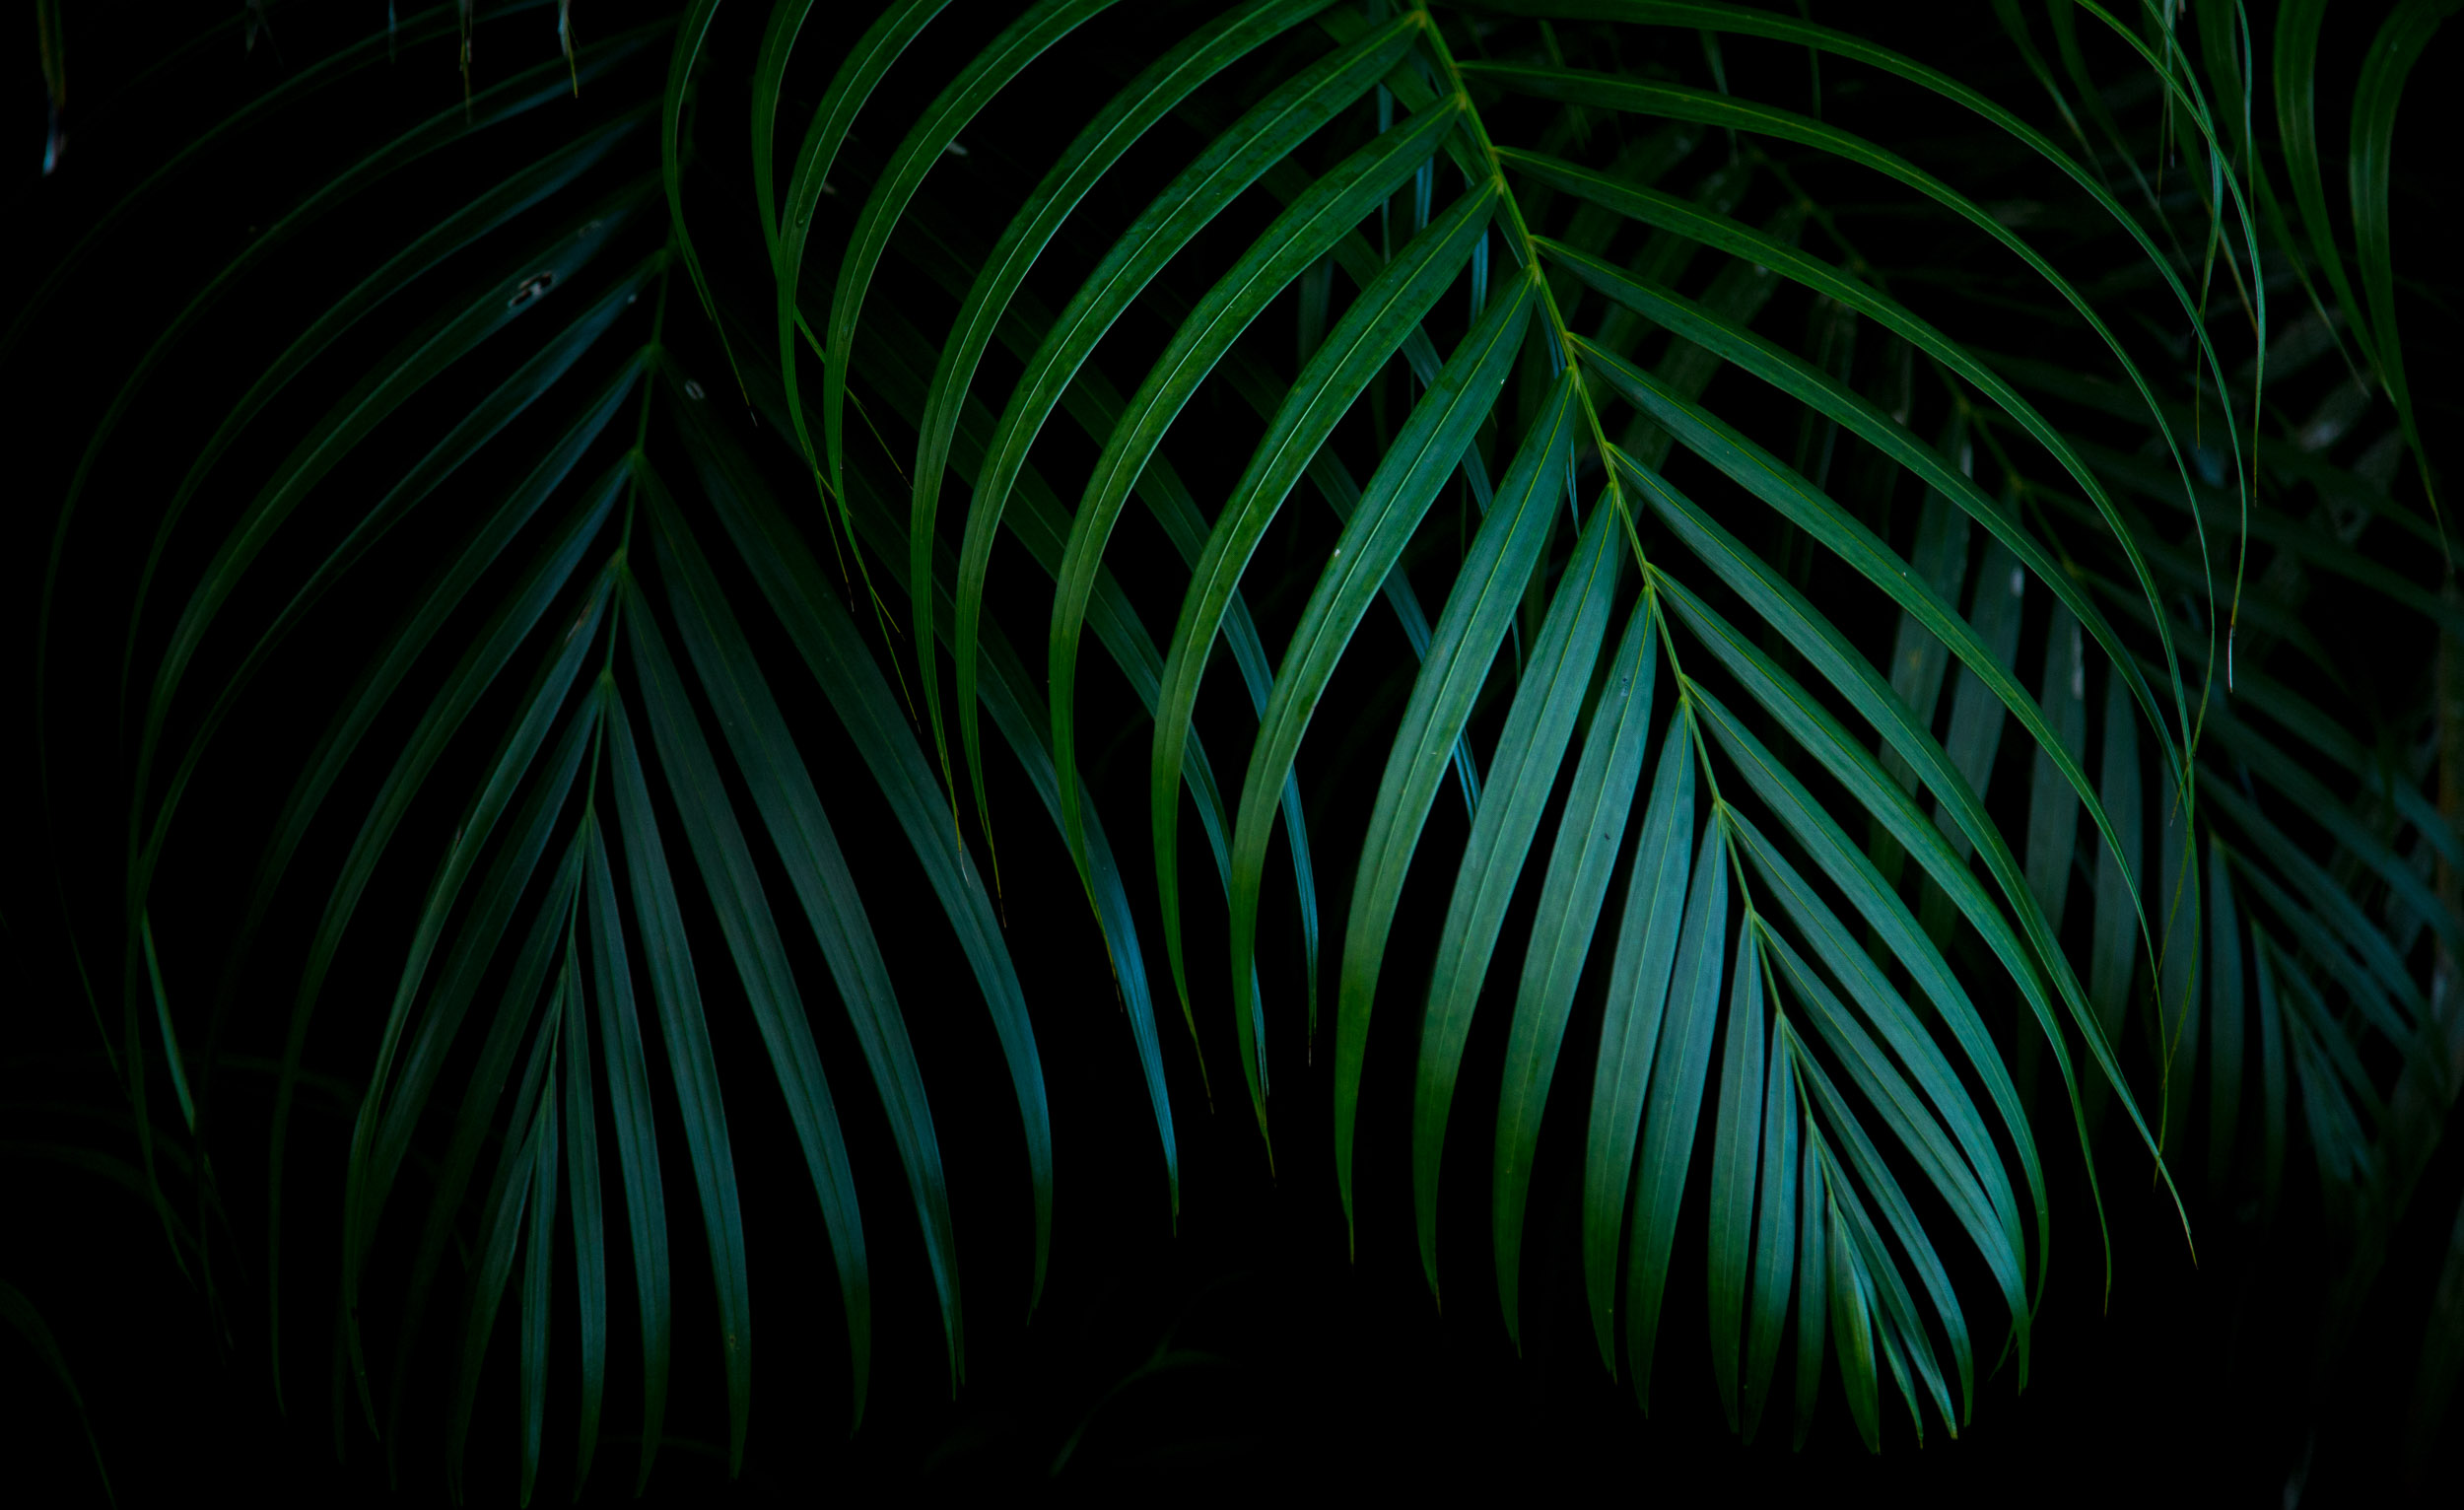 beauty in the details_hawaii_ferns_jed_share_K156448